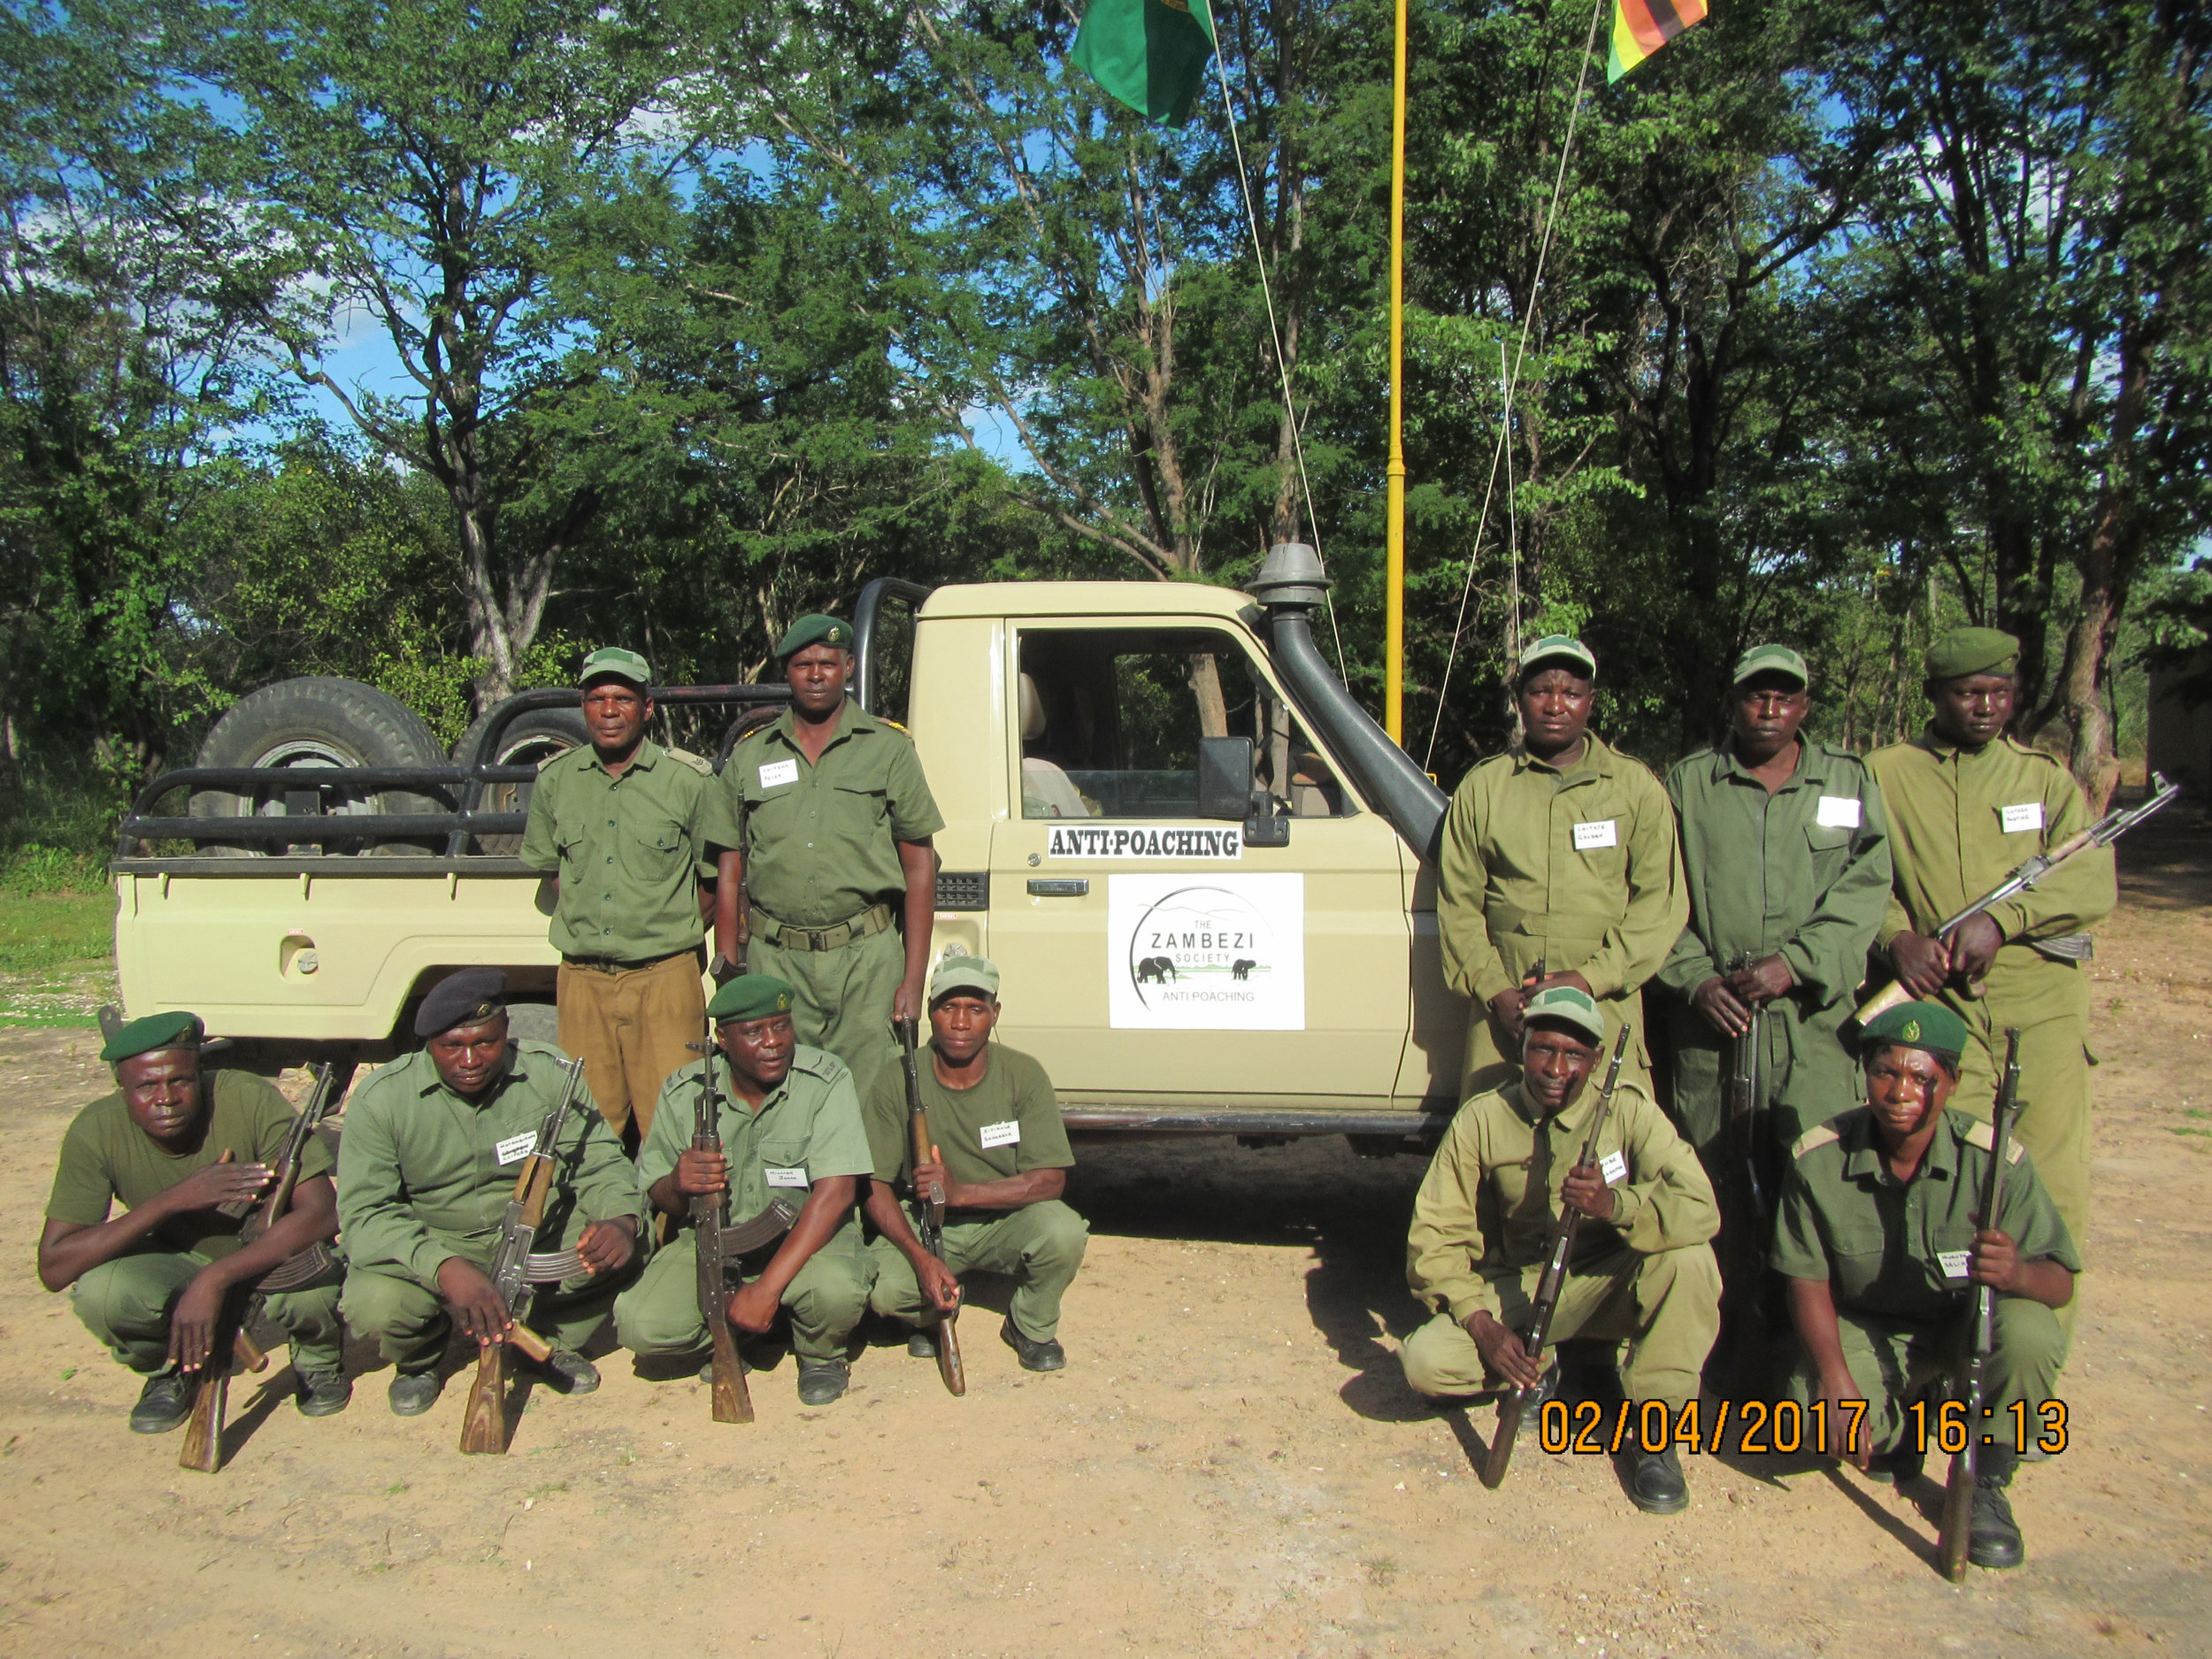 Zamsoc vehicle with rangers.jpg